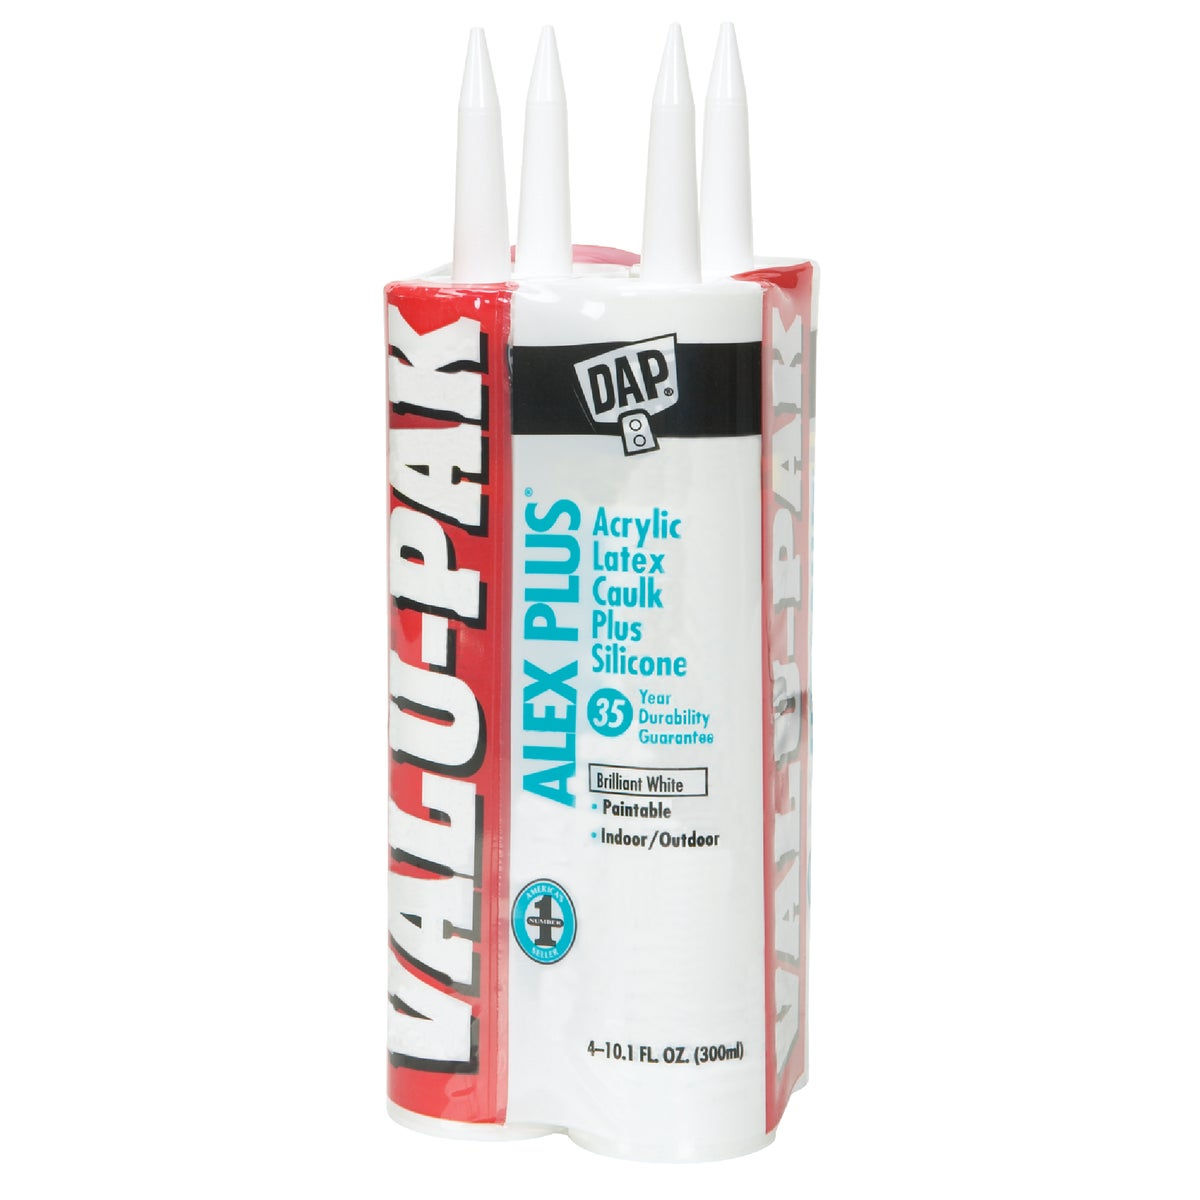 4PK WHT ALEX PLUS CAULK